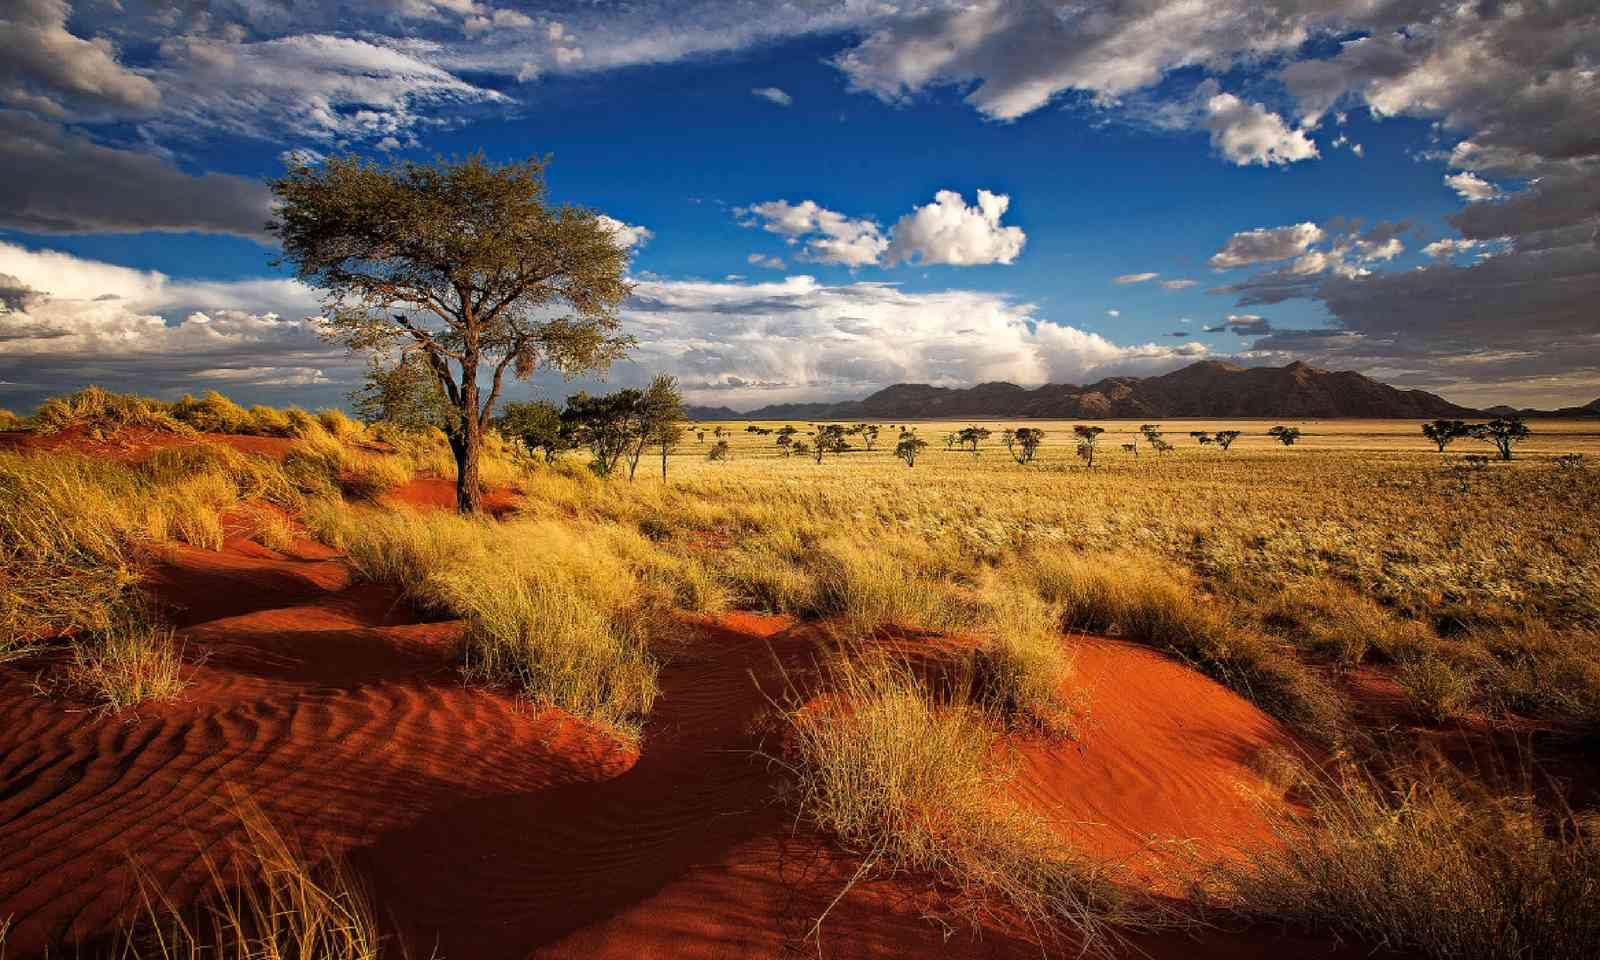 Private nature reserve in Namibia (Shutterstock)